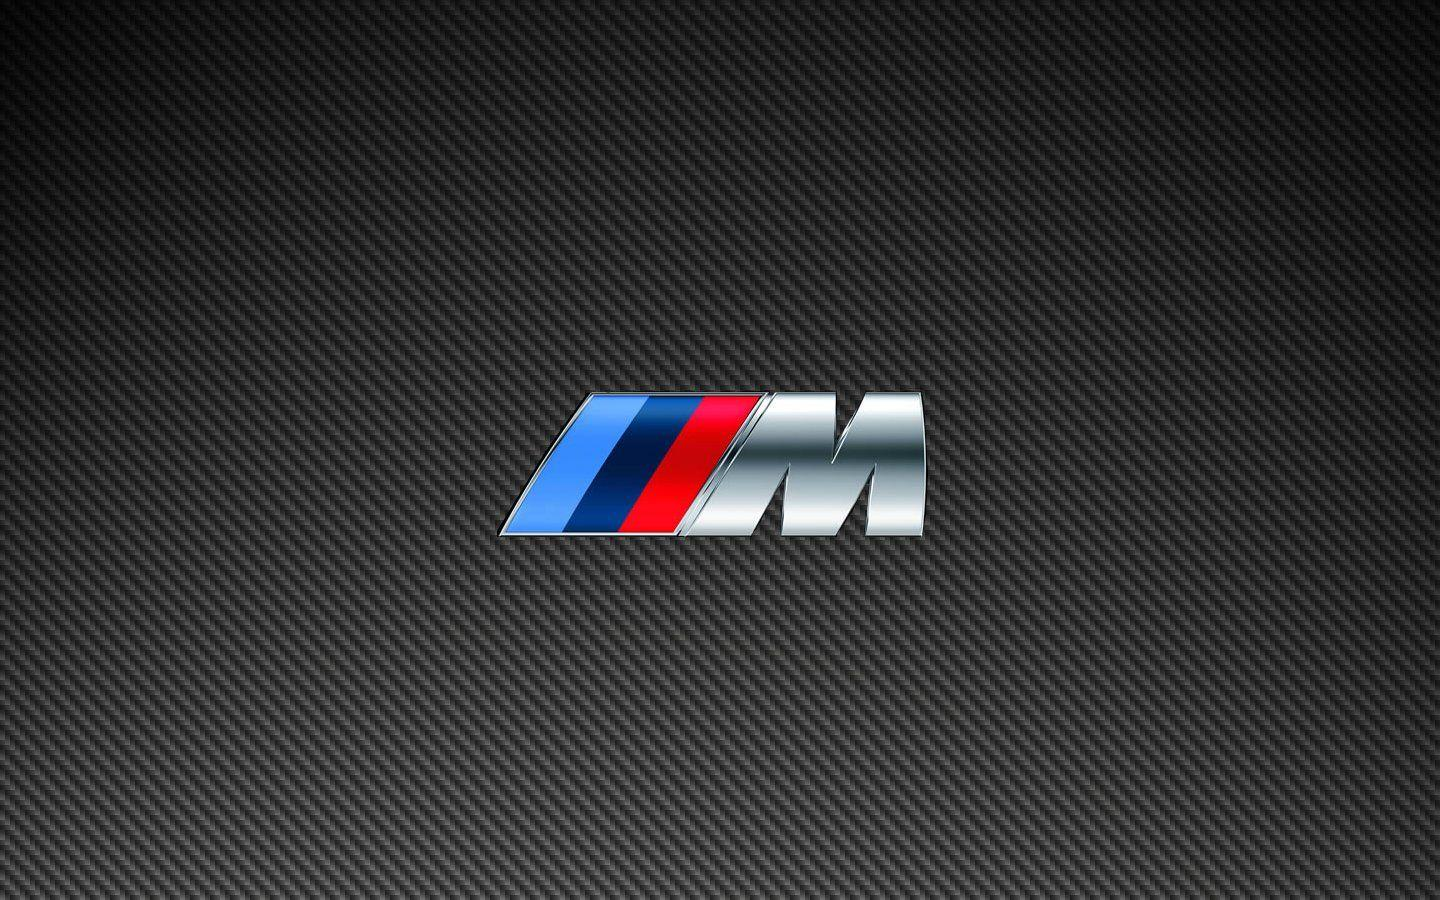 Awesome BMW M Logo Wallpapers 43980 1440x900px